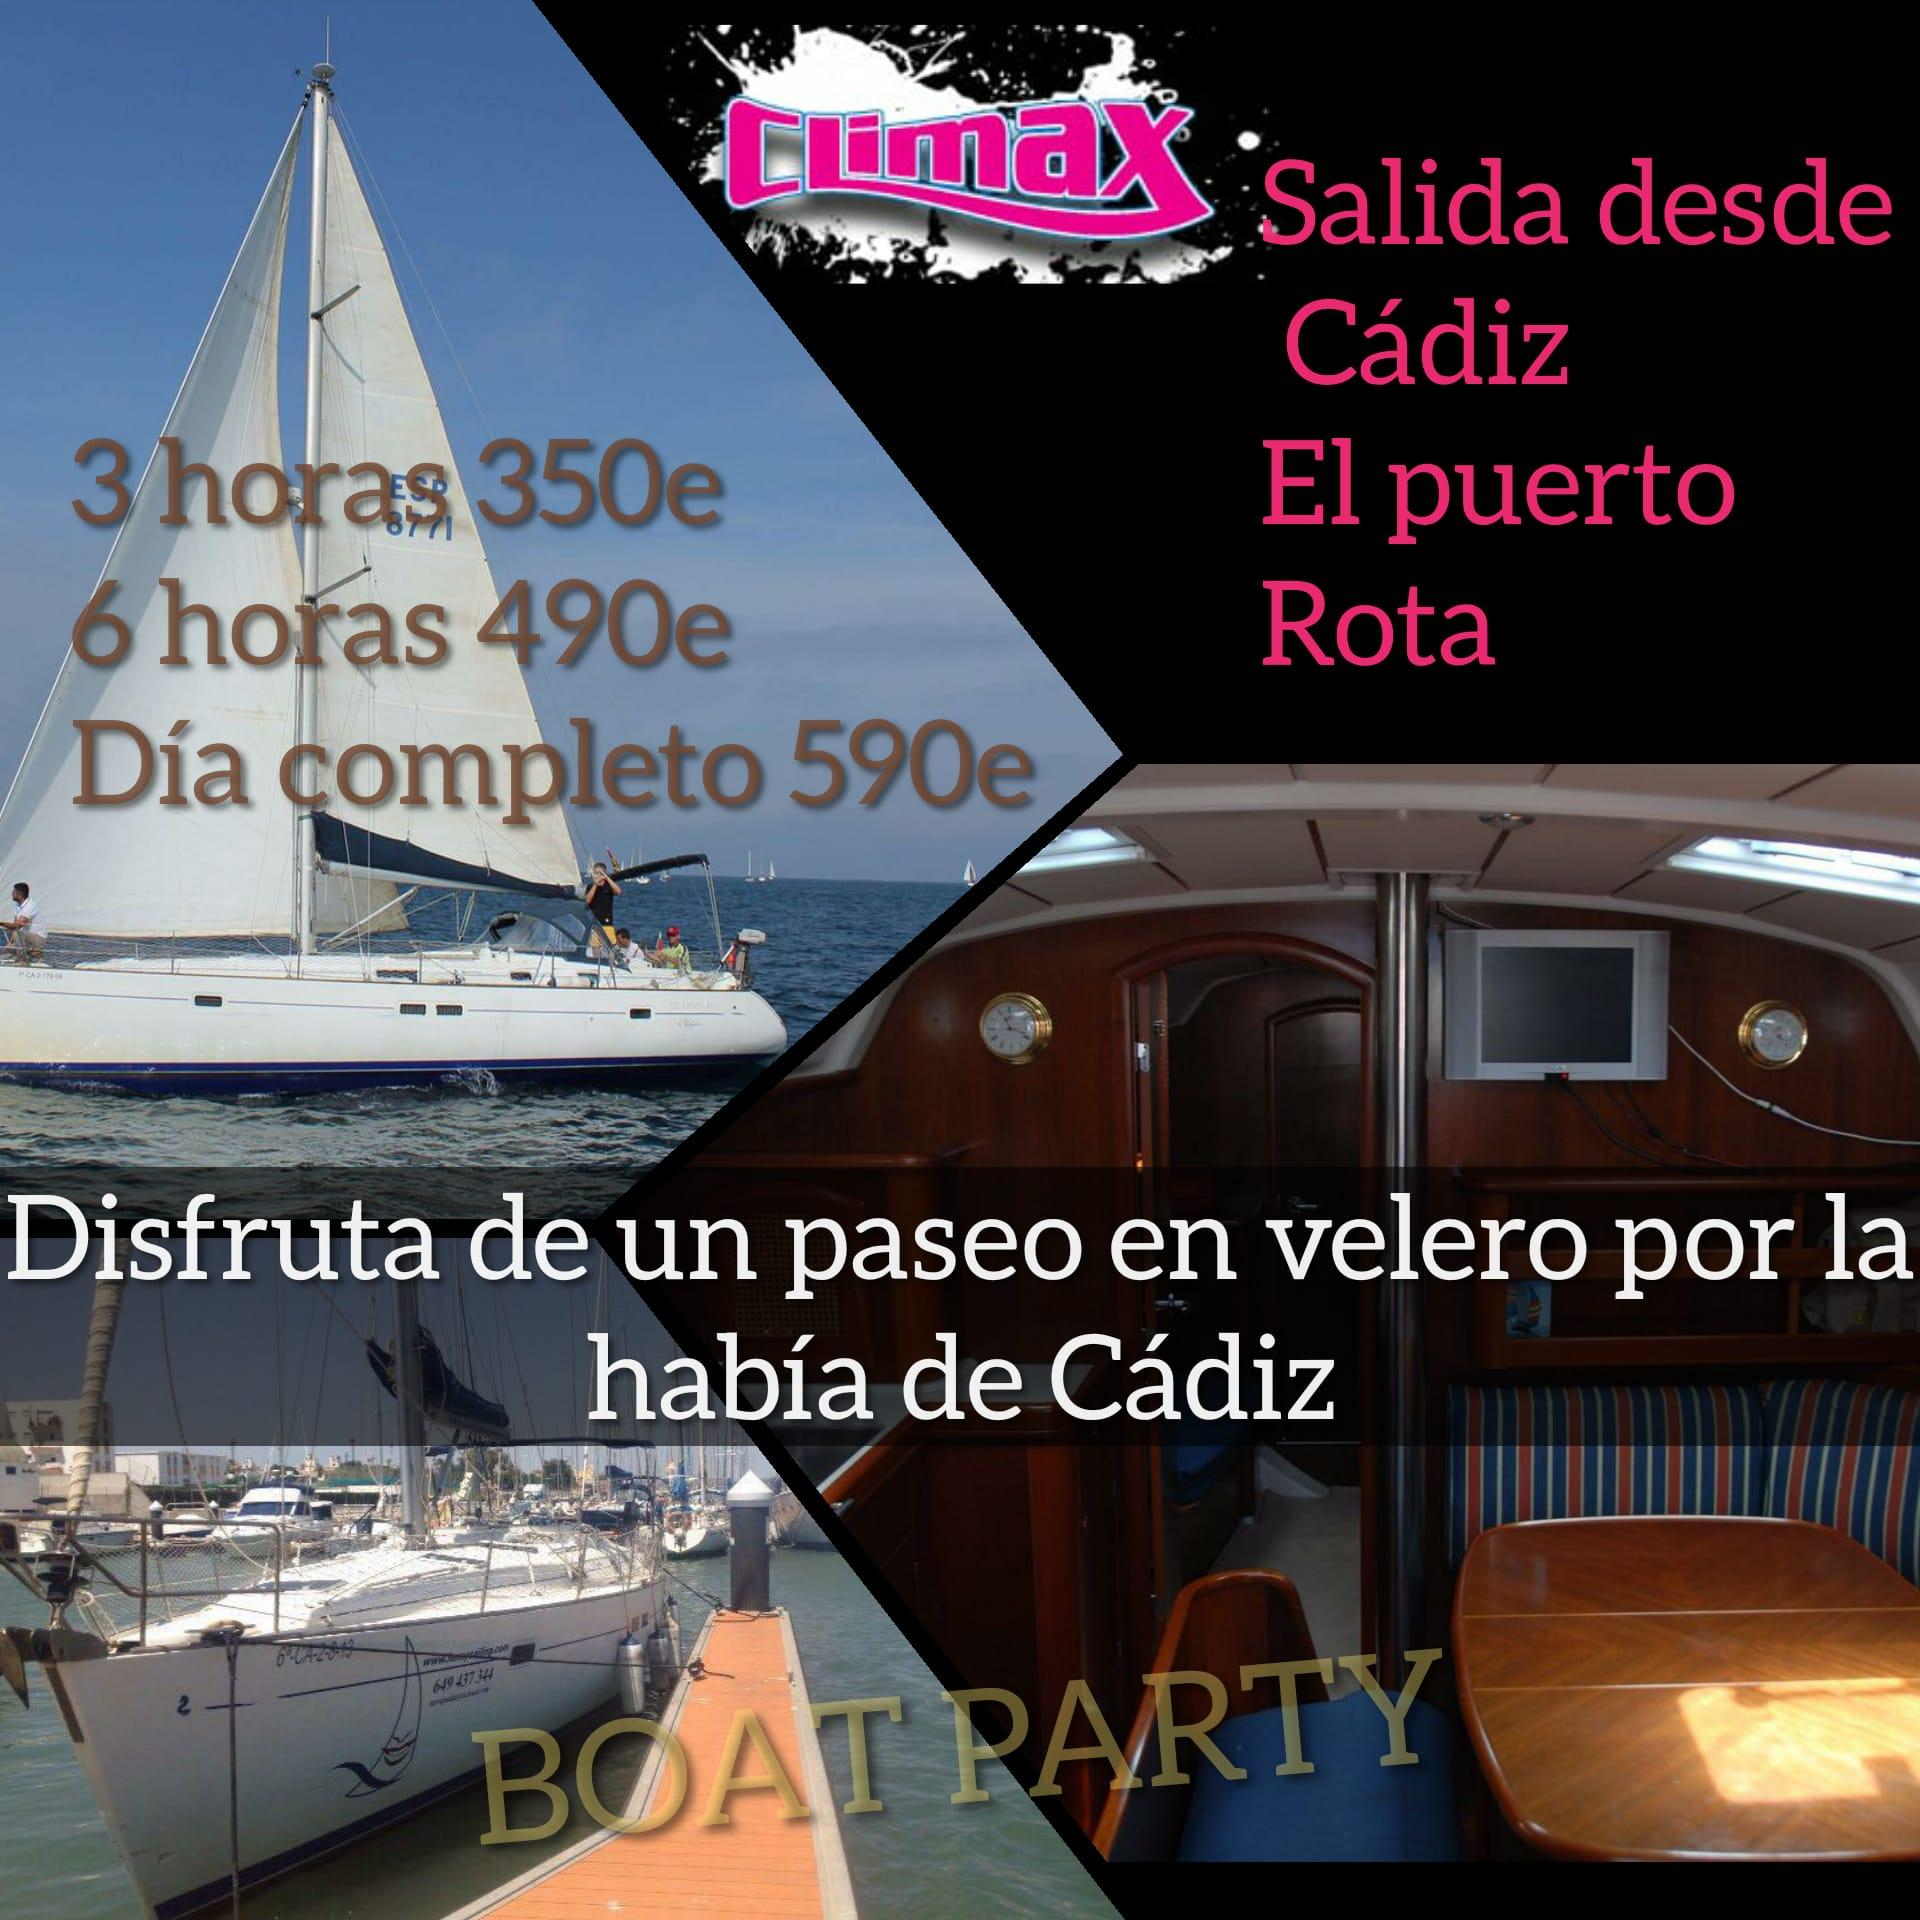 Boat party Cádiz